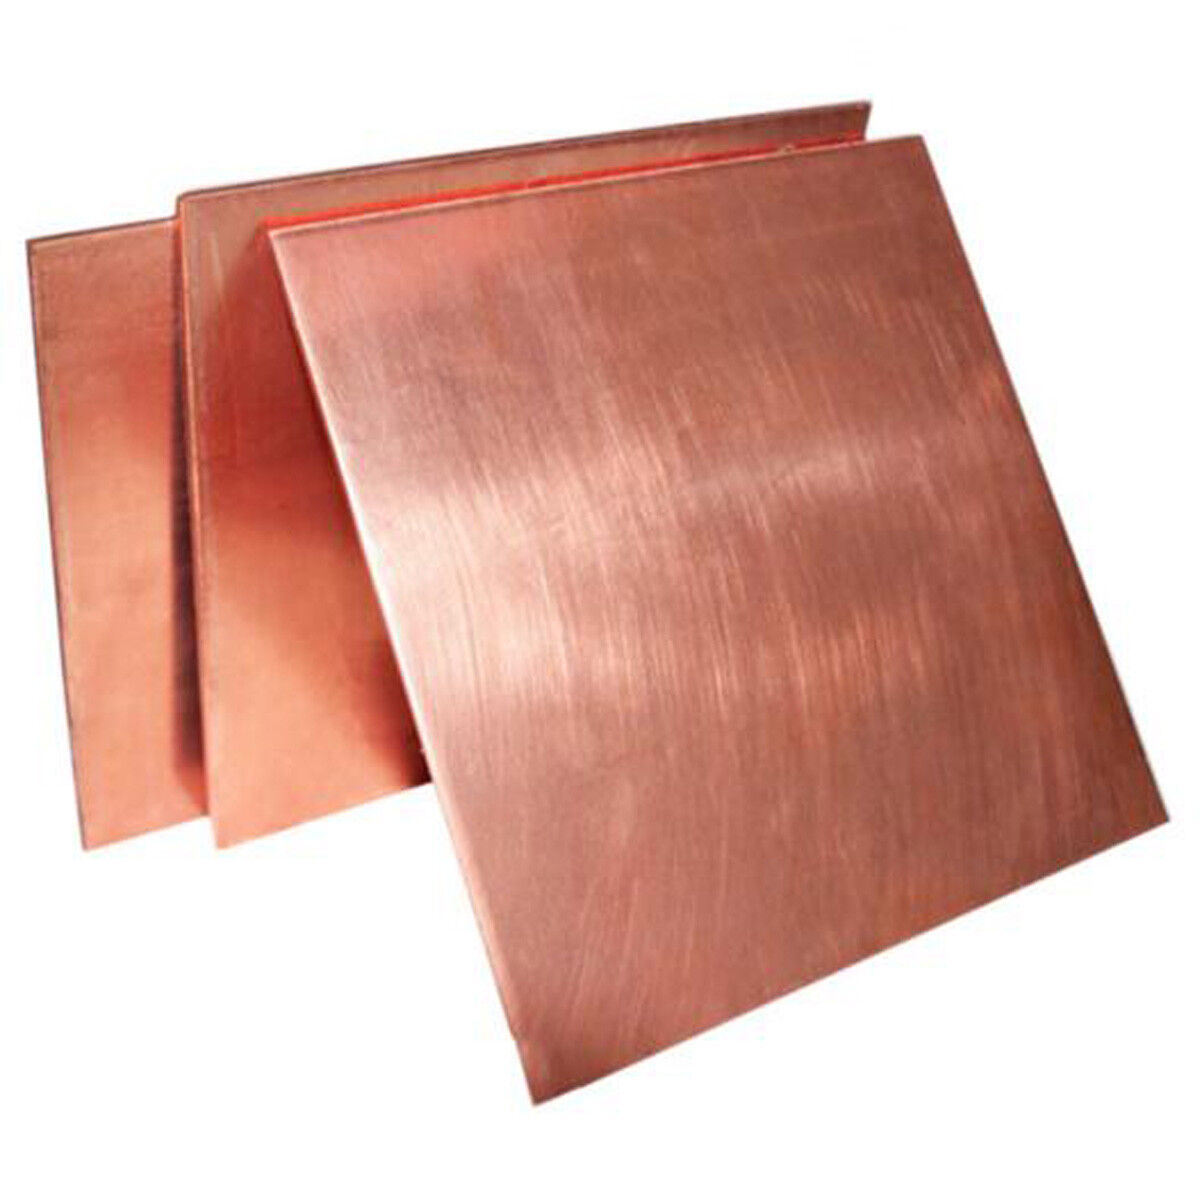 Select Thick 2.0mm - 3.0mm Copper Sheet Plate Guillotine Cut Metal Copper Sheet